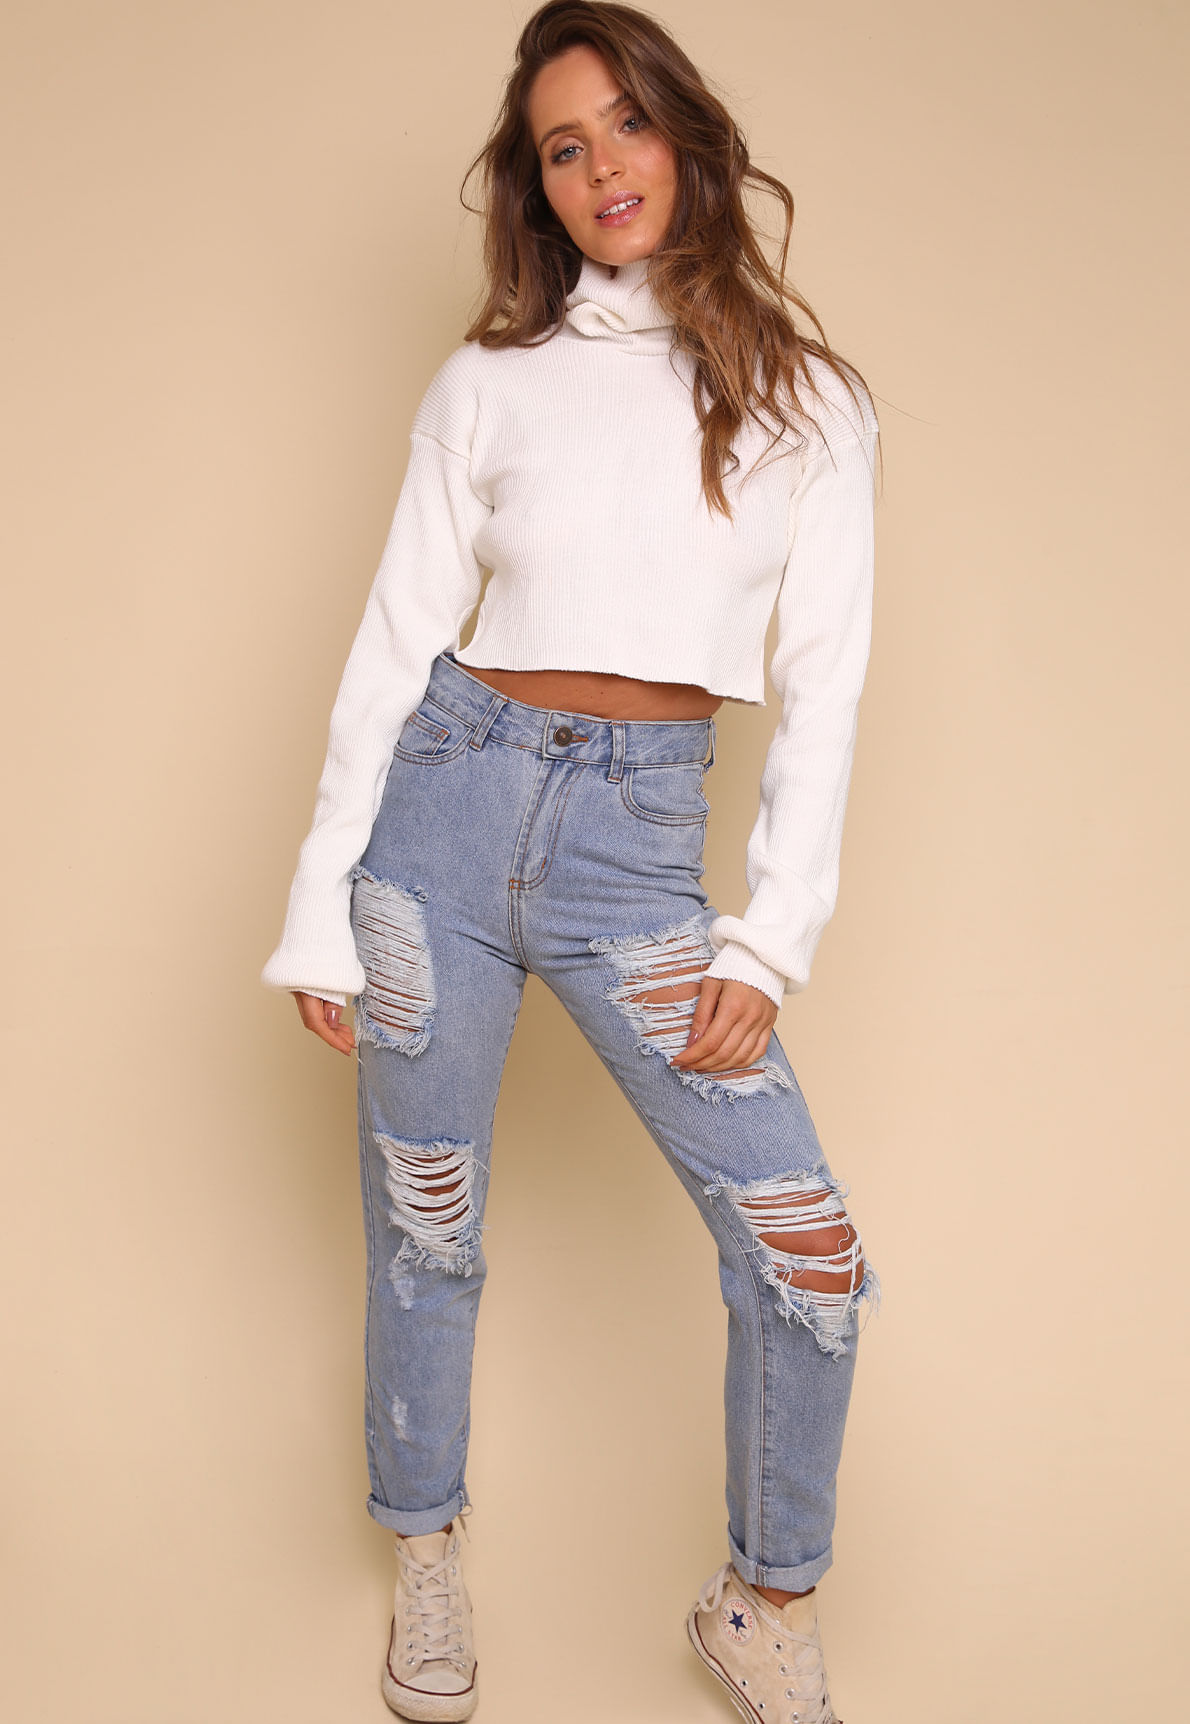 25668-calca-baggy-jeans-destroyed-melissa-mundo-lolita-09